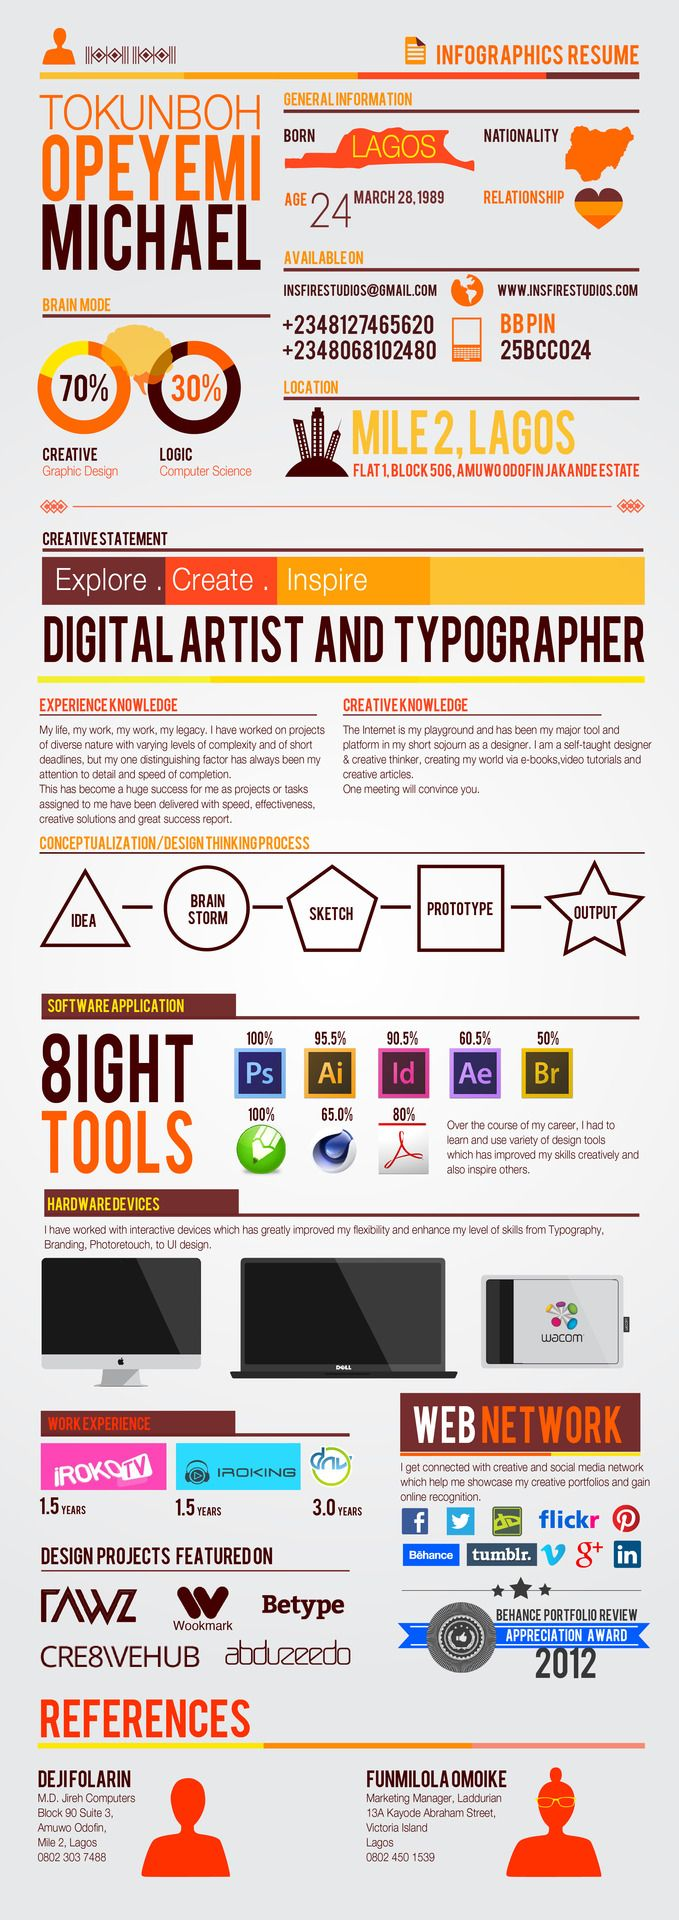 Opposenewapstandardsus  Marvellous  Ideas About Infographic Resume On Pinterest  My Portfolio  With Heavenly  Ideas About Infographic Resume On Pinterest  My Portfolio Resume And Resume Design With Beautiful How To Make A Resume Without Work Experience Also Professional Acting Resume In Addition What Is Objective On A Resume And Where To Put Certifications On Resume As Well As Resume Youtube Additionally Include Gpa On Resume From Pinterestcom With Opposenewapstandardsus  Heavenly  Ideas About Infographic Resume On Pinterest  My Portfolio  With Beautiful  Ideas About Infographic Resume On Pinterest  My Portfolio Resume And Resume Design And Marvellous How To Make A Resume Without Work Experience Also Professional Acting Resume In Addition What Is Objective On A Resume From Pinterestcom